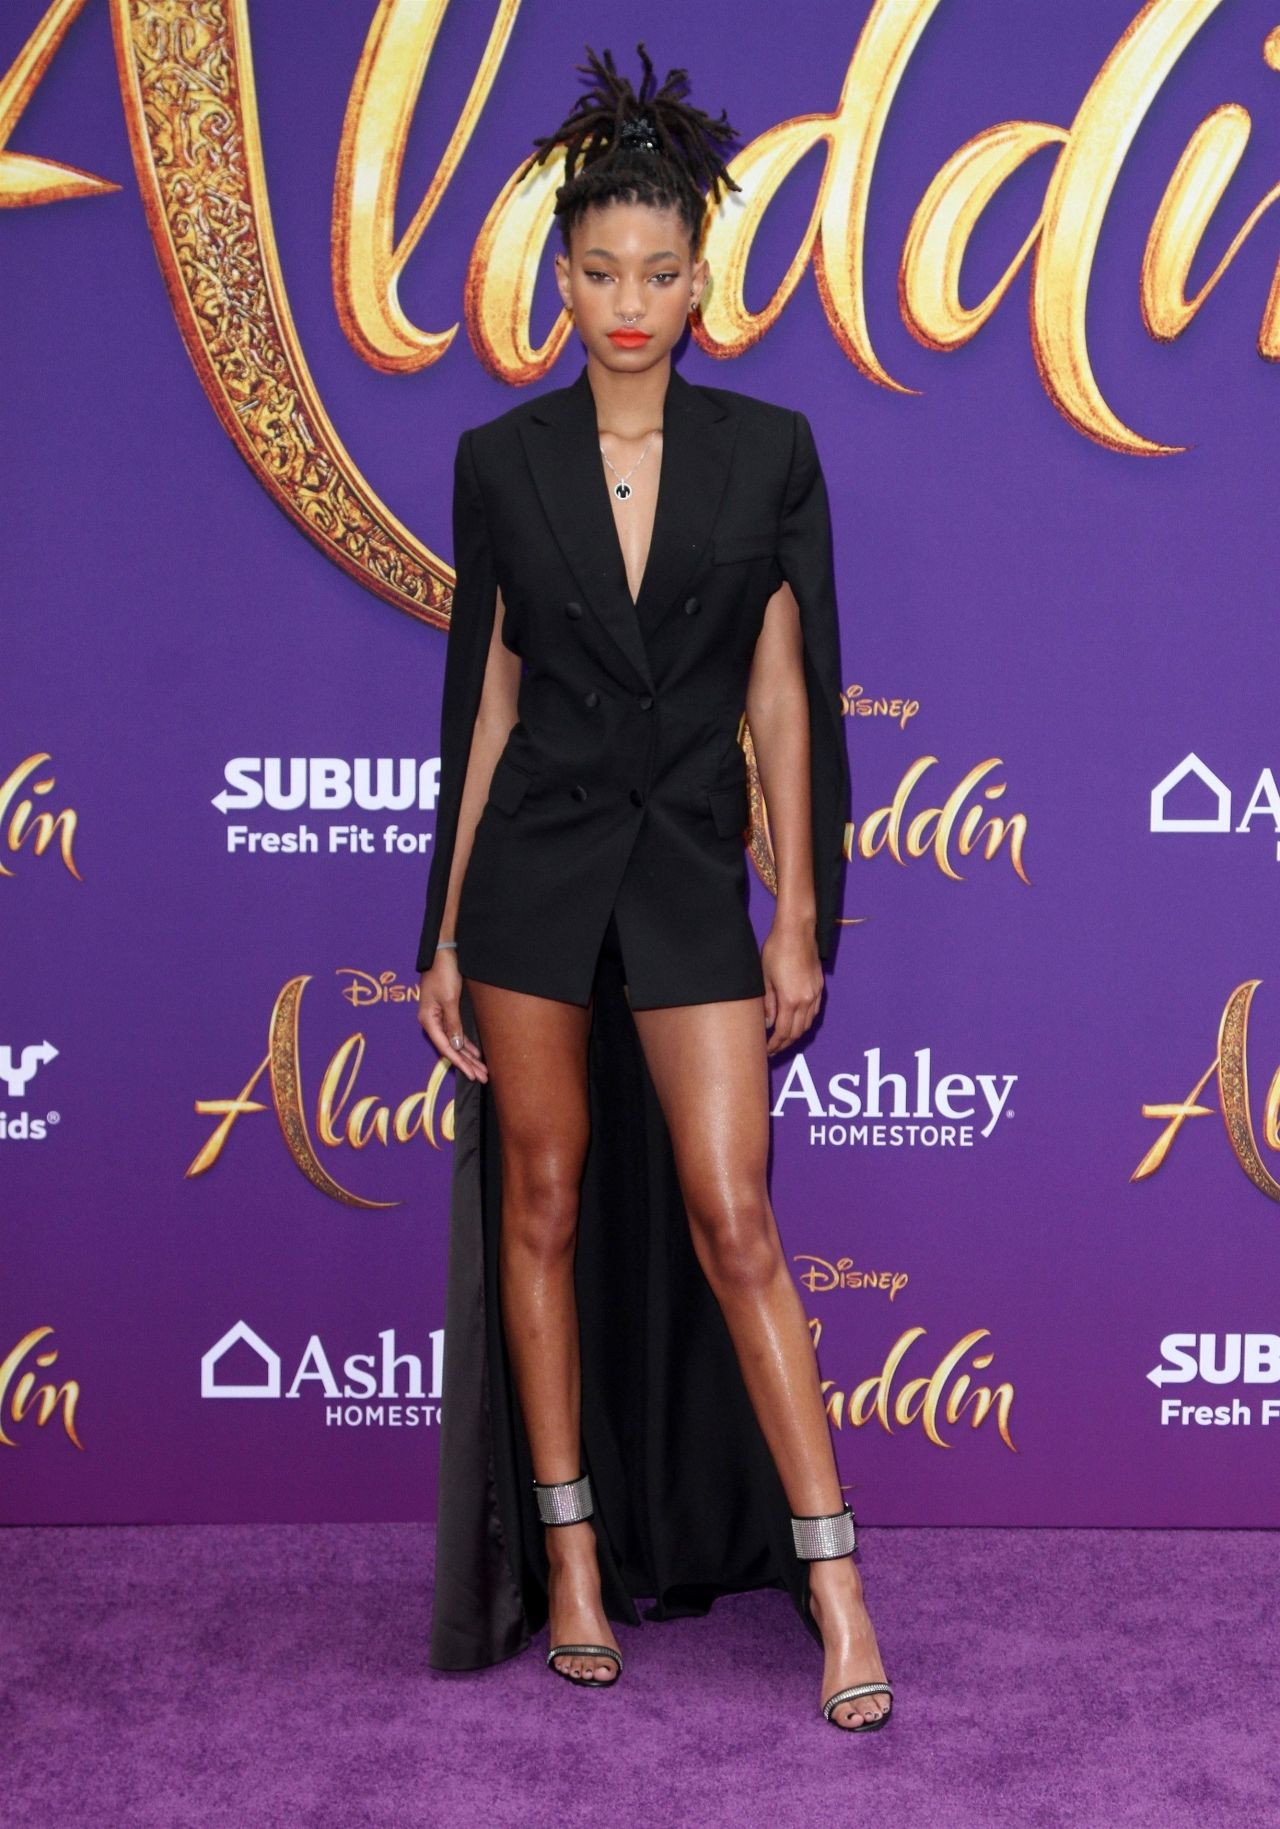 Willow Smith Aladdin Premiere In Hollywood